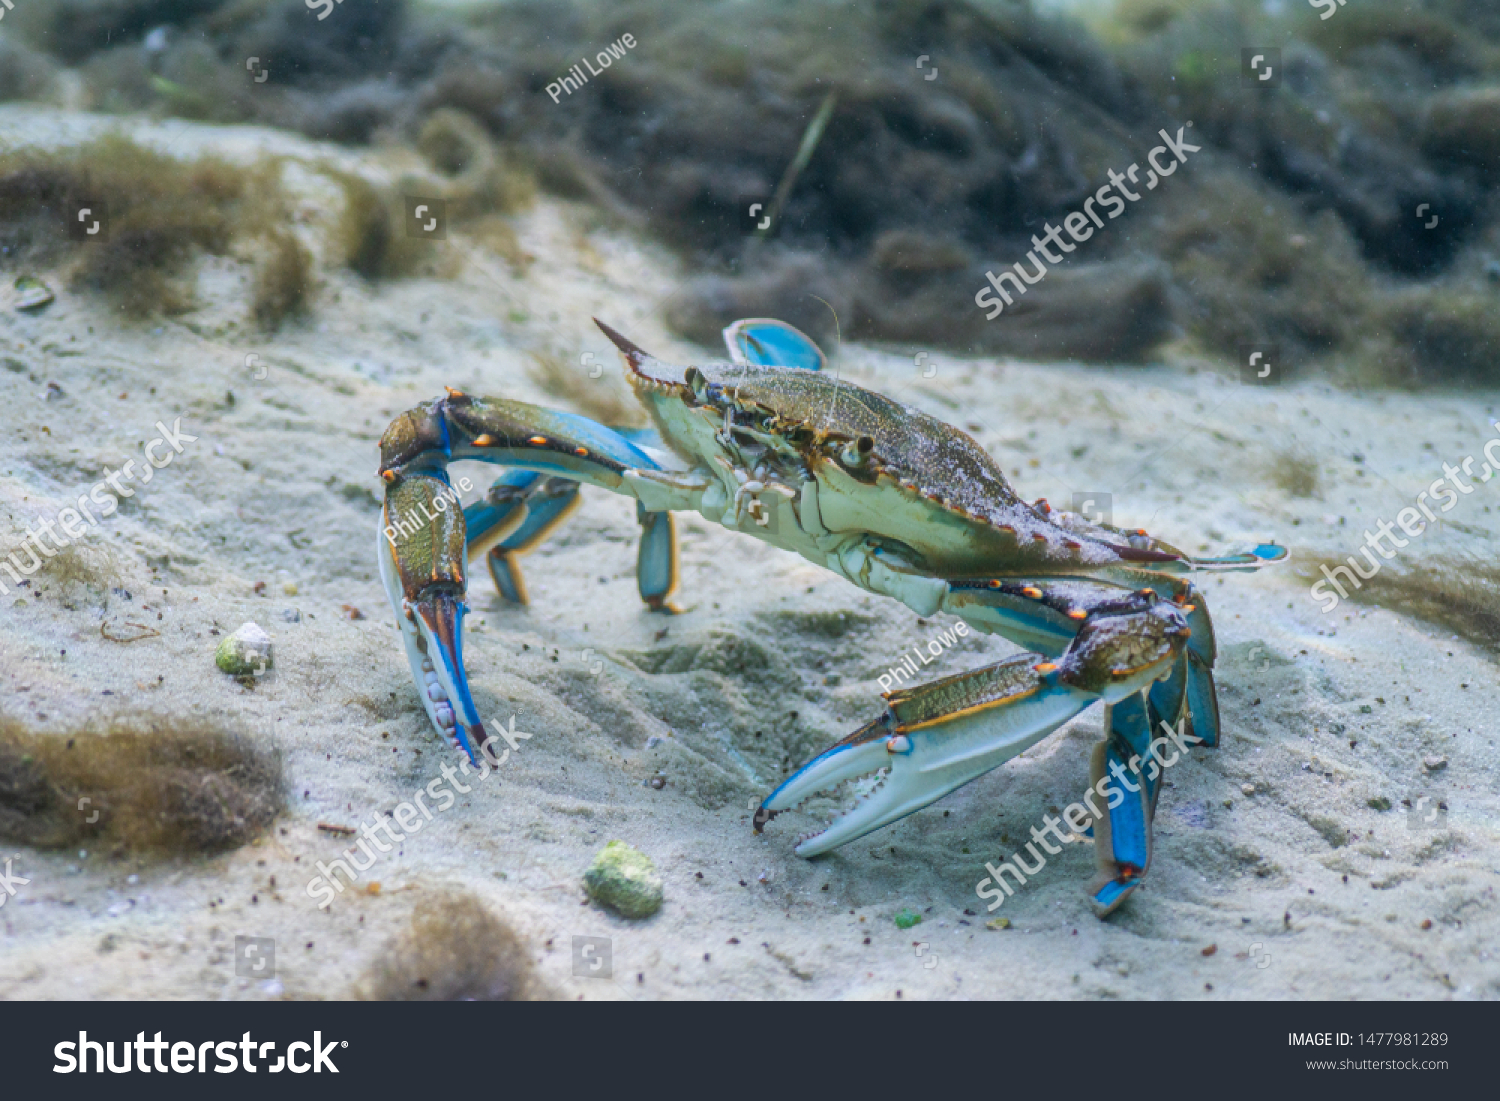 stock-photo-a-wary-blue-crab-callinectes